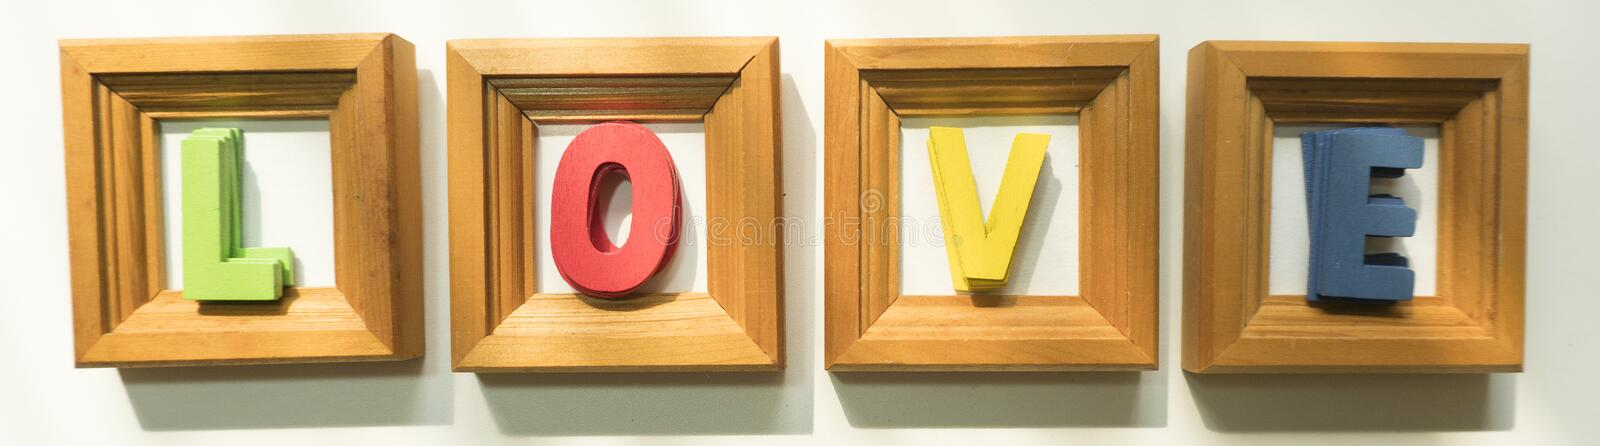 The wooden letters of green, red, yellow, and blue were written 'love' in the square frame stock photos